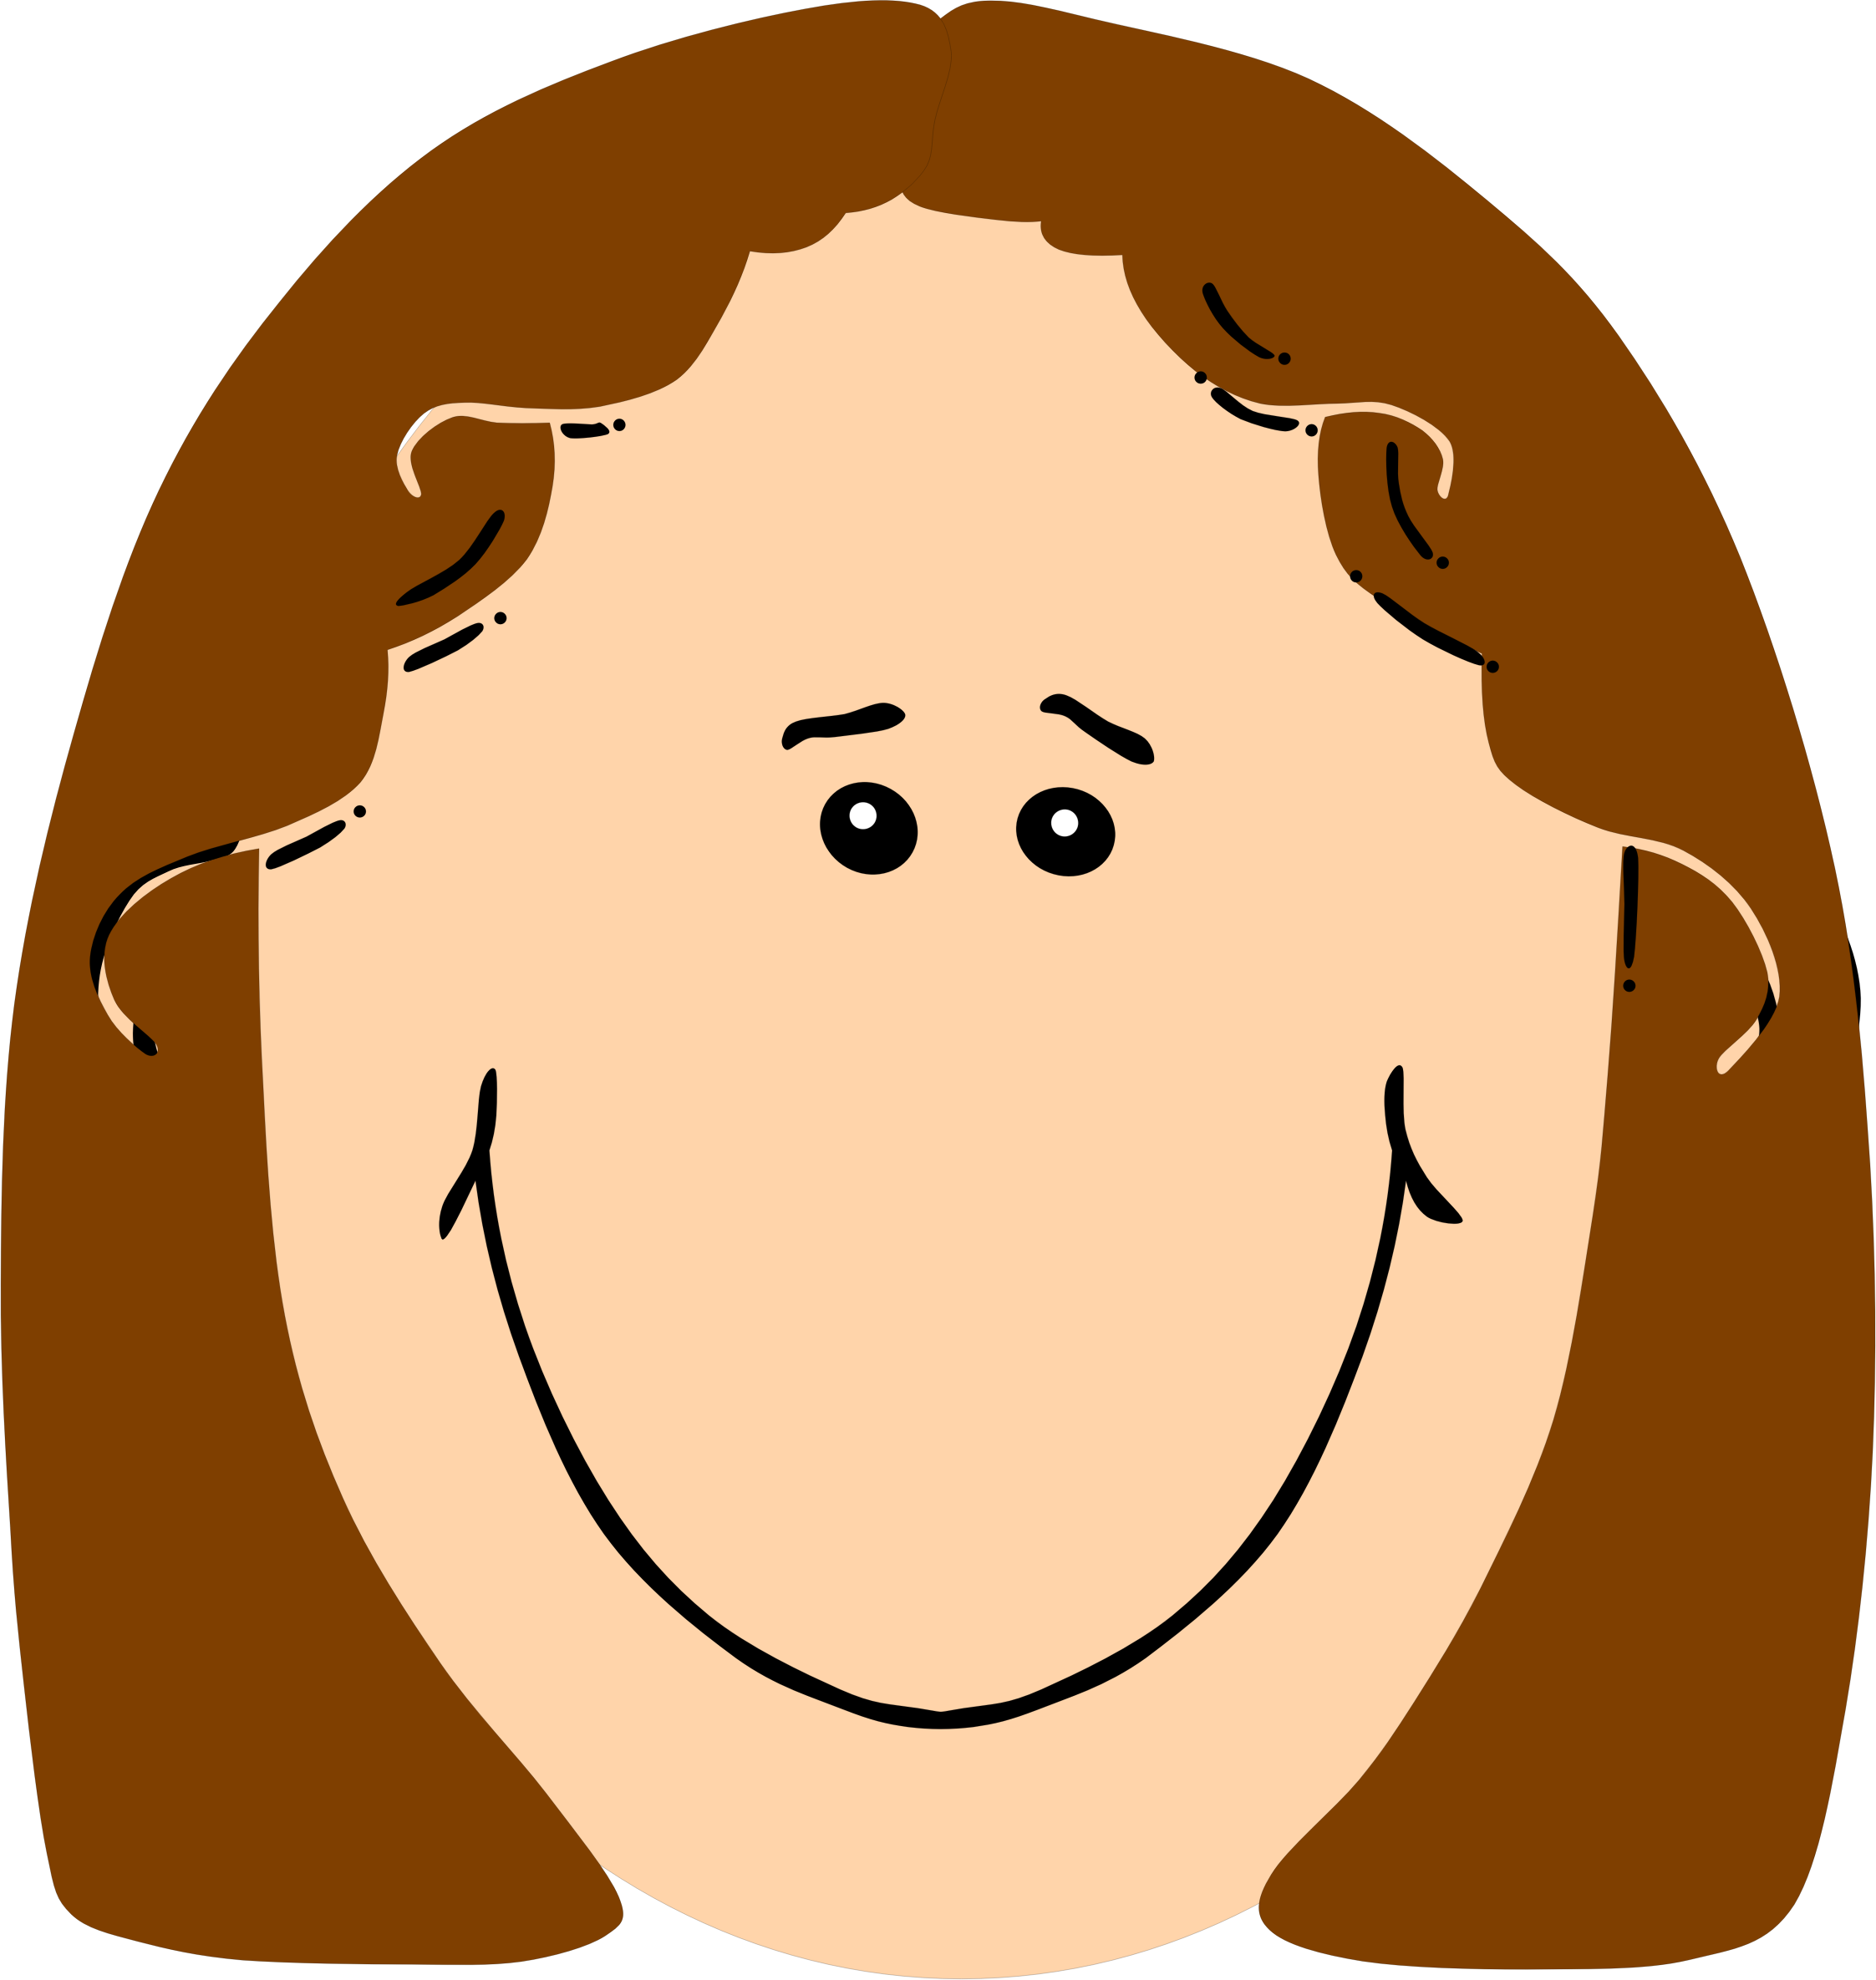 Circle clipart face. Girl with brown hair